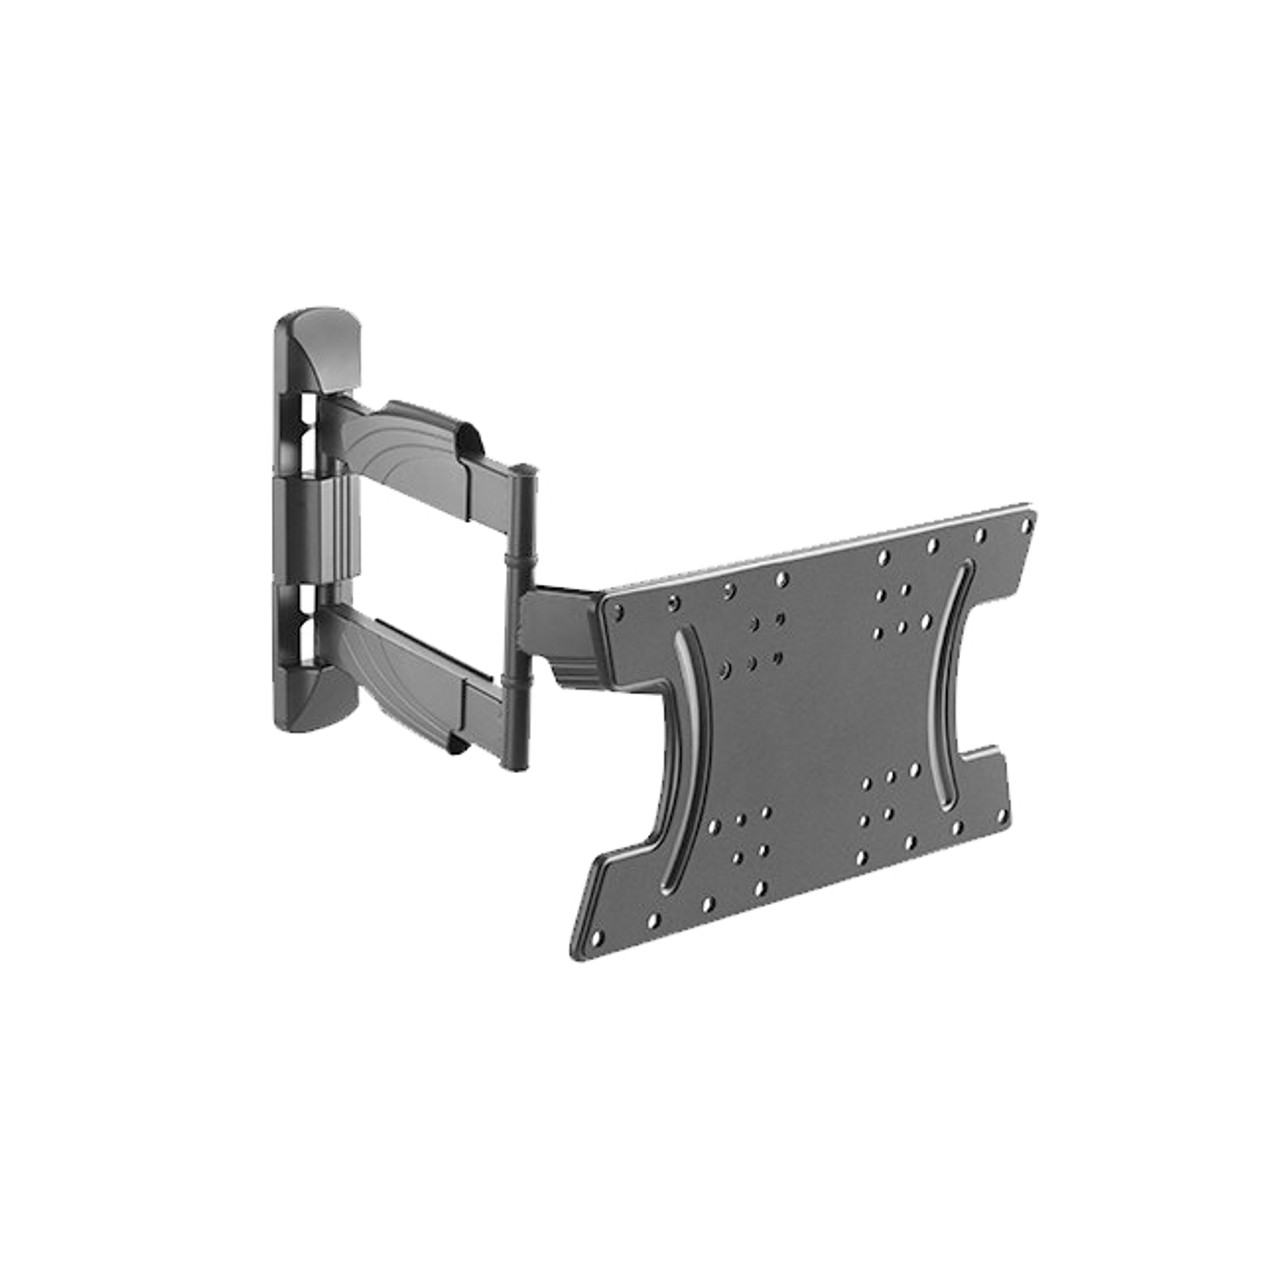 "Image for 4Cabling Full-motion TV Wall Mount Bracket for 32"" to 65"" for OLED TV CX Computer Superstore"